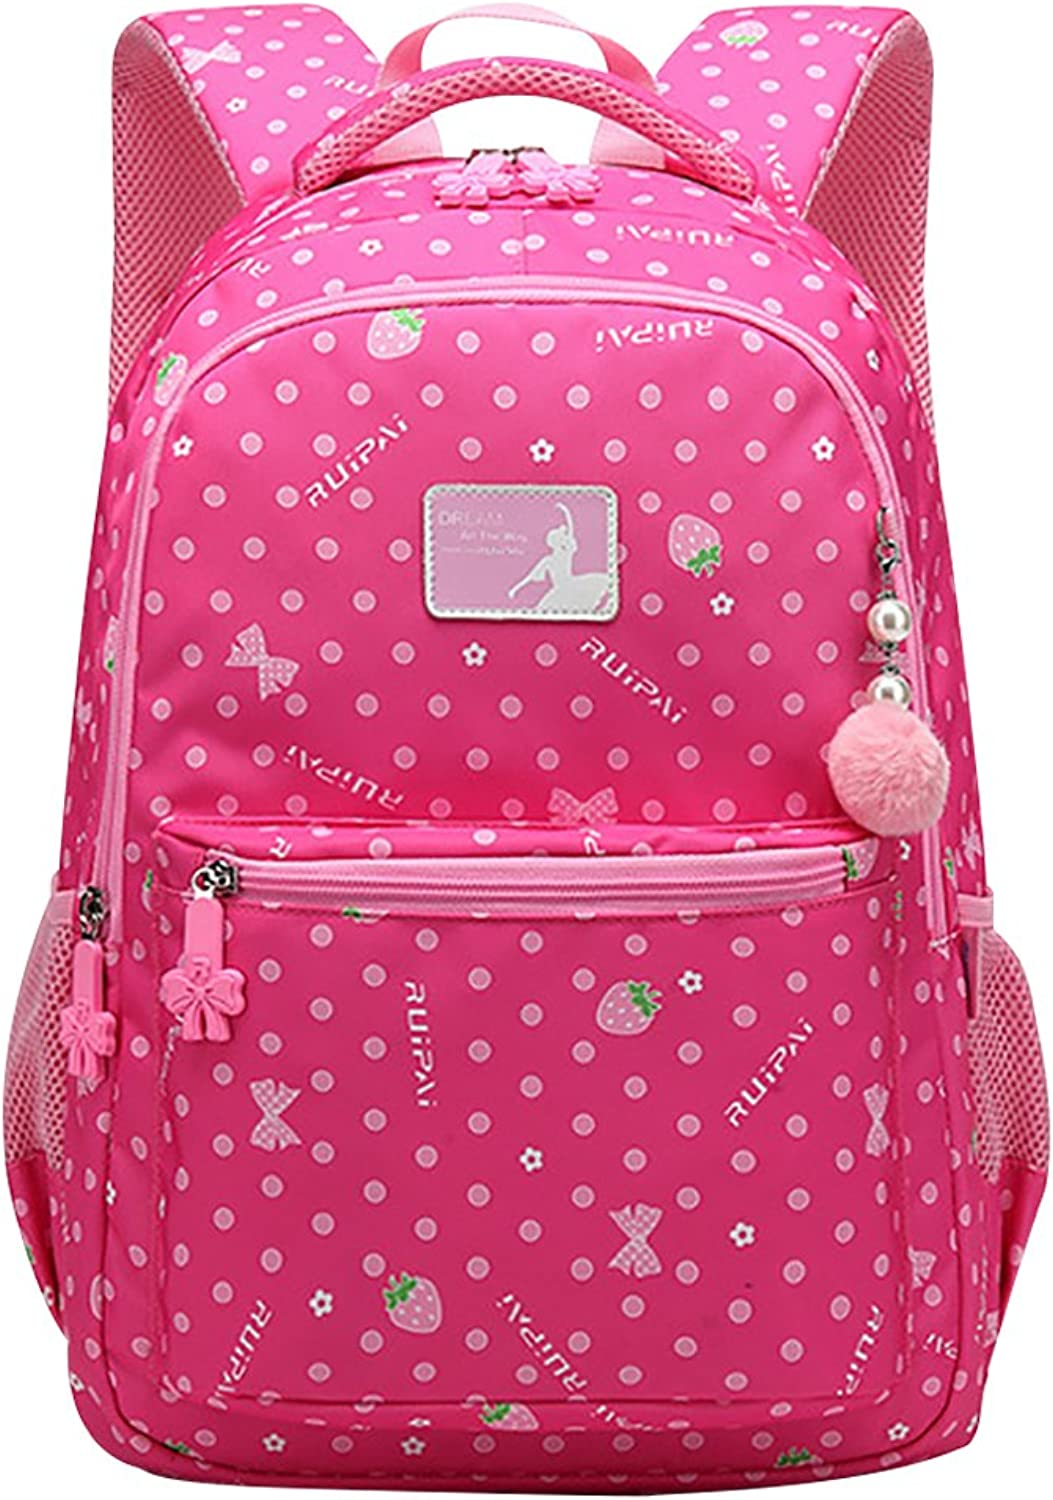 COAFIT School Backpack Cute Strawberry Print Padded Strap Backpack with Pom Pom Ball